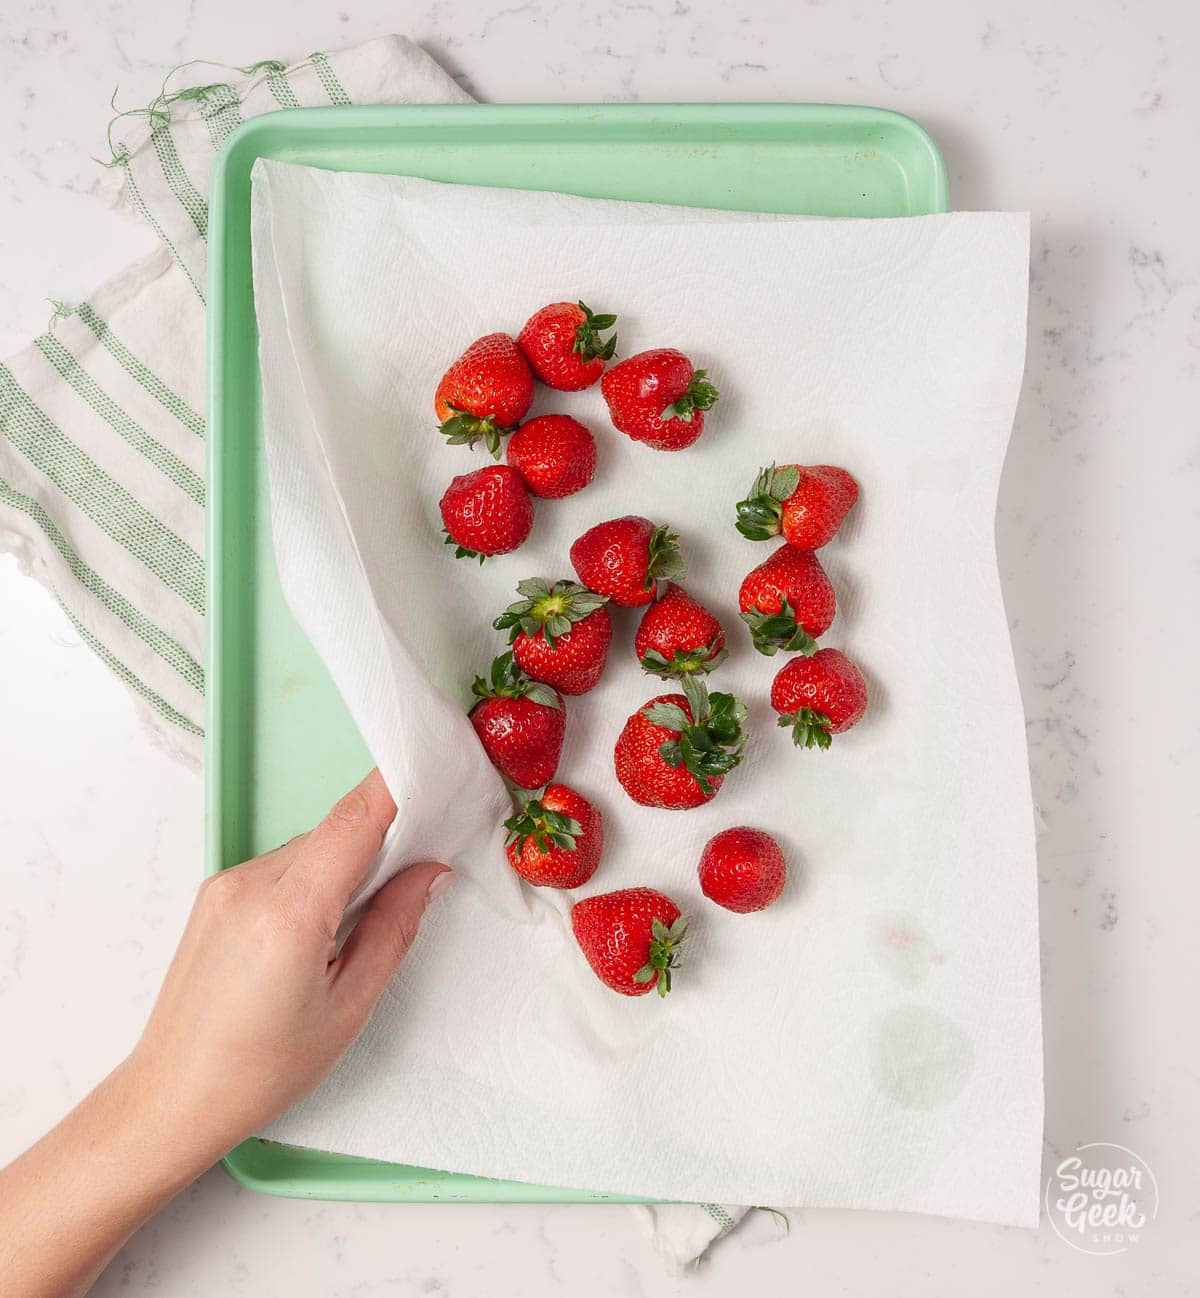 strawberries on paper towels on a green cookie sheet shot from above with a hand